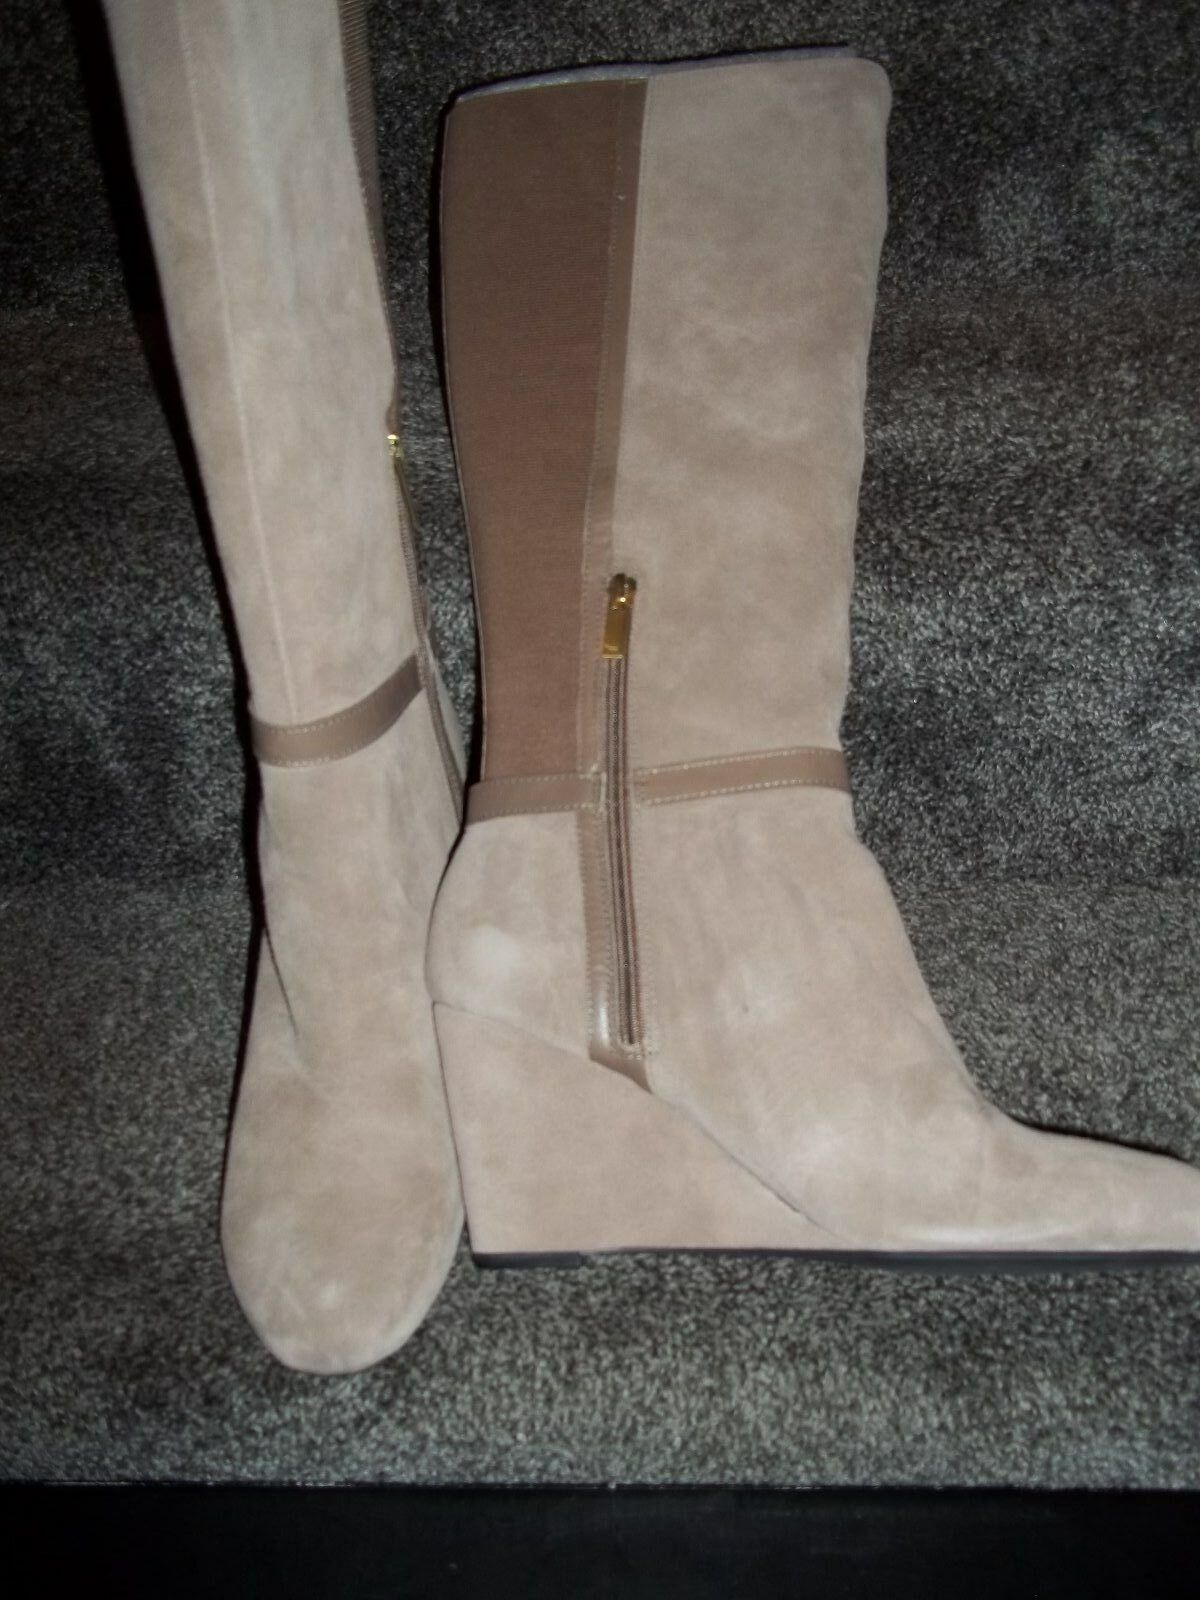 Jone New Damens York Damens New Suede and Leder boot 8f9c32